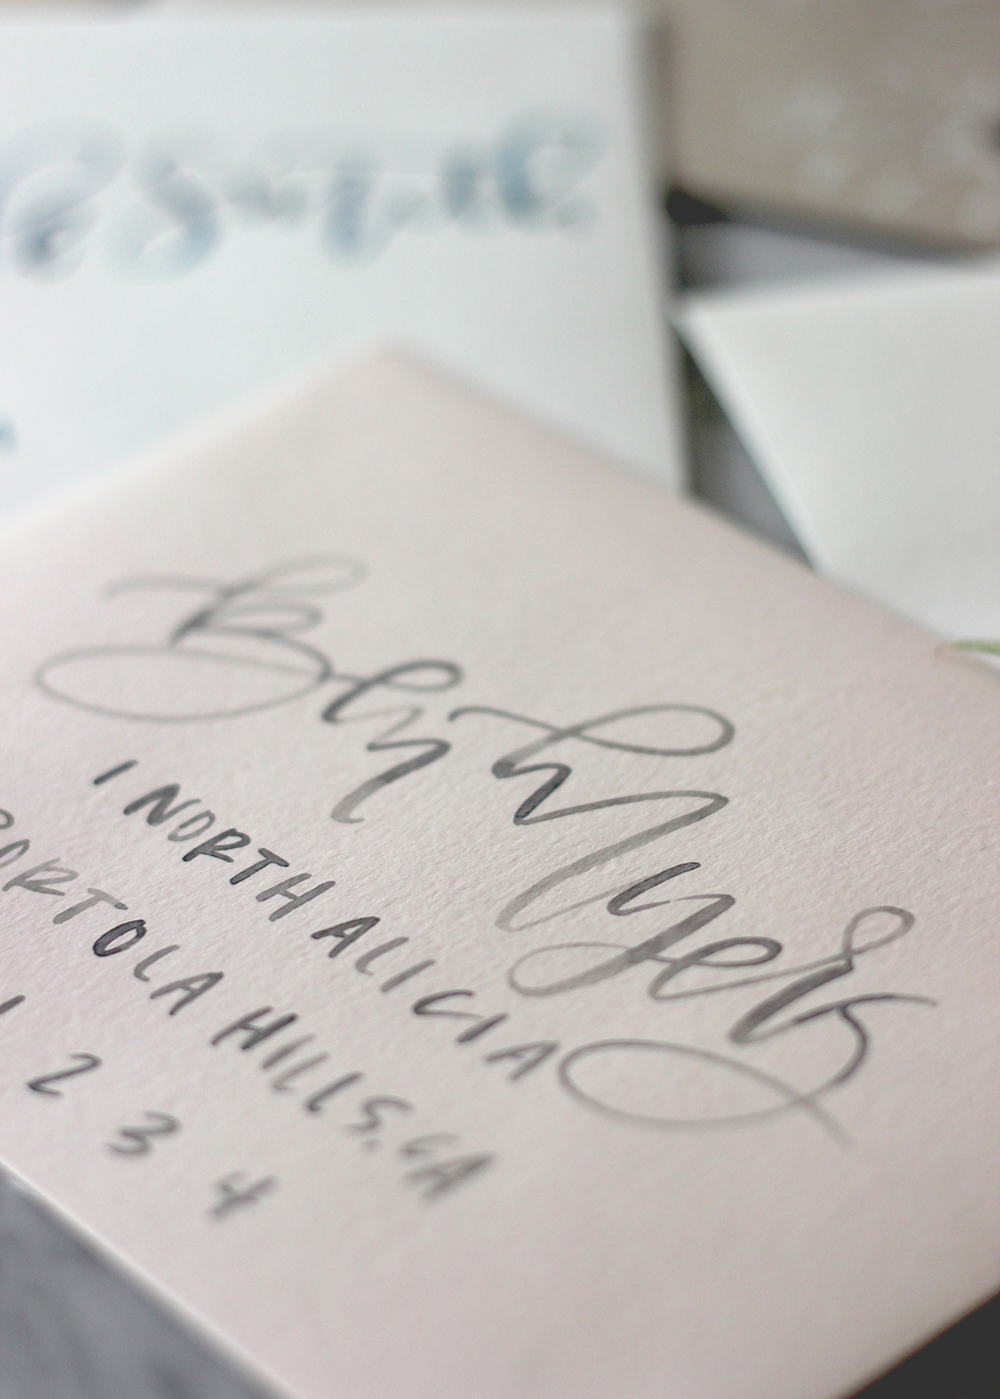 My new secret weapon for addressing envelopes calligraphy a blush envelopes with grey watercolor lettering a fabulous fete spiritdancerdesigns Images